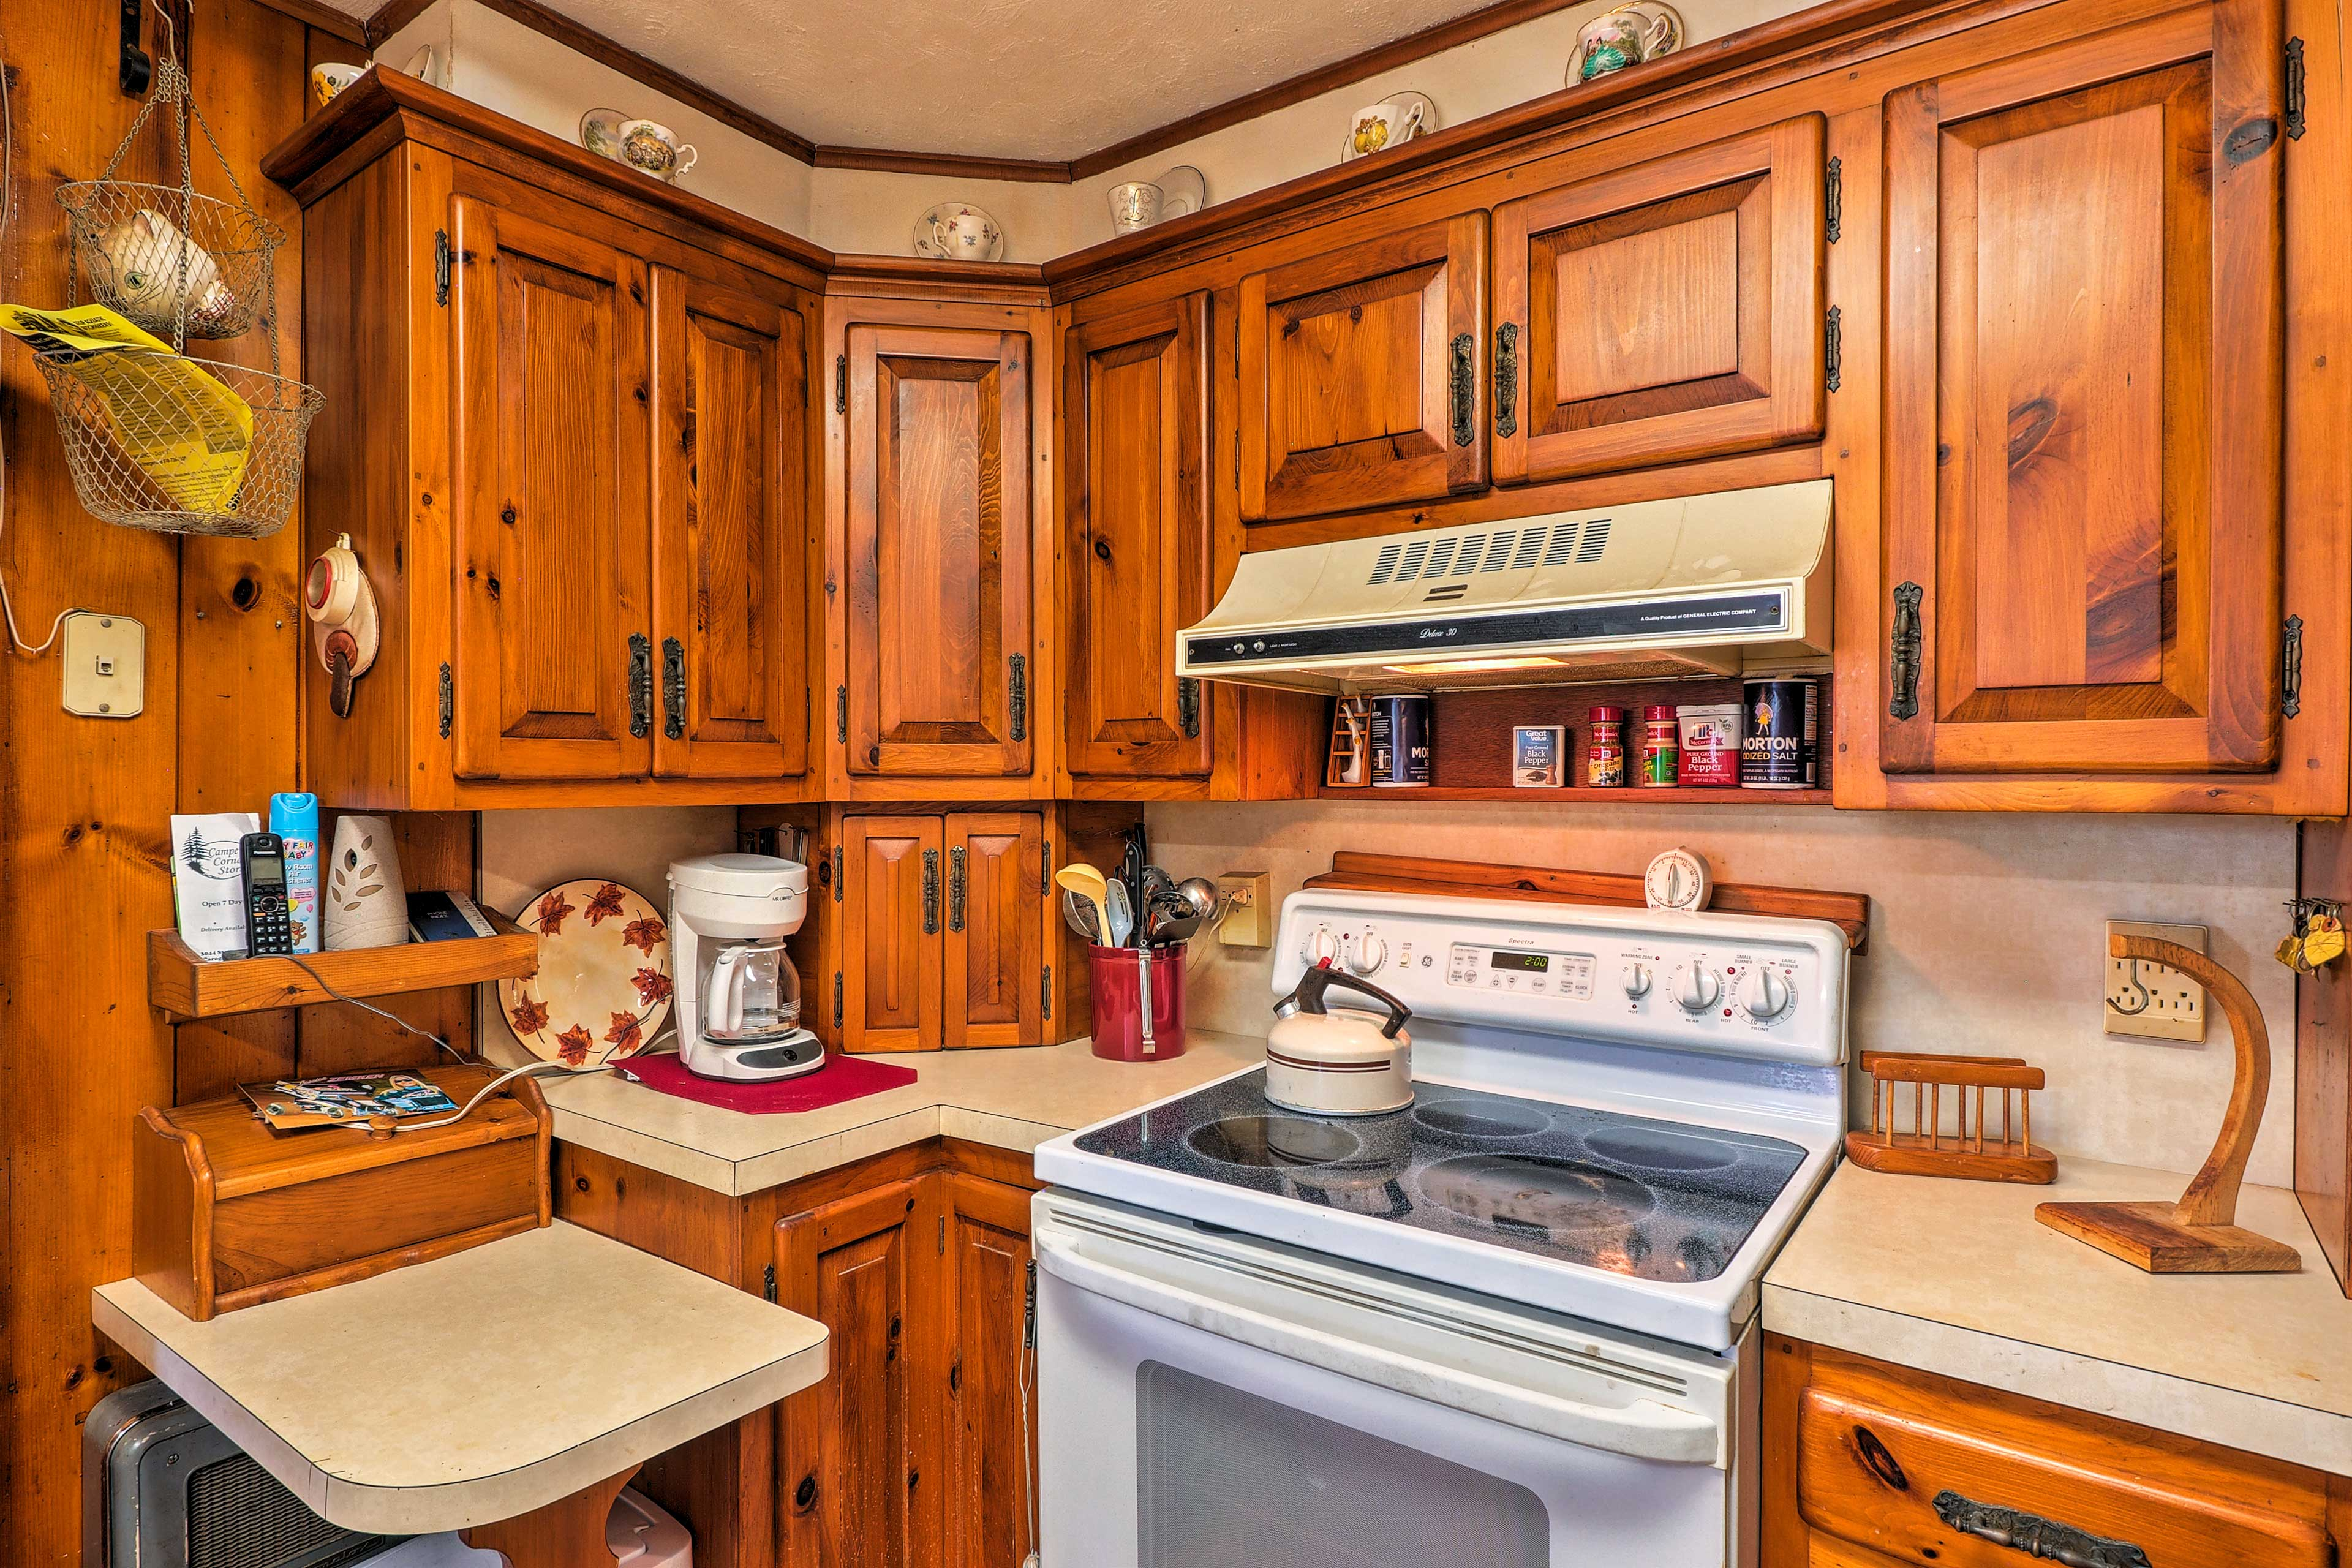 The kitchen is fully equipped so you can cook with ease while away.